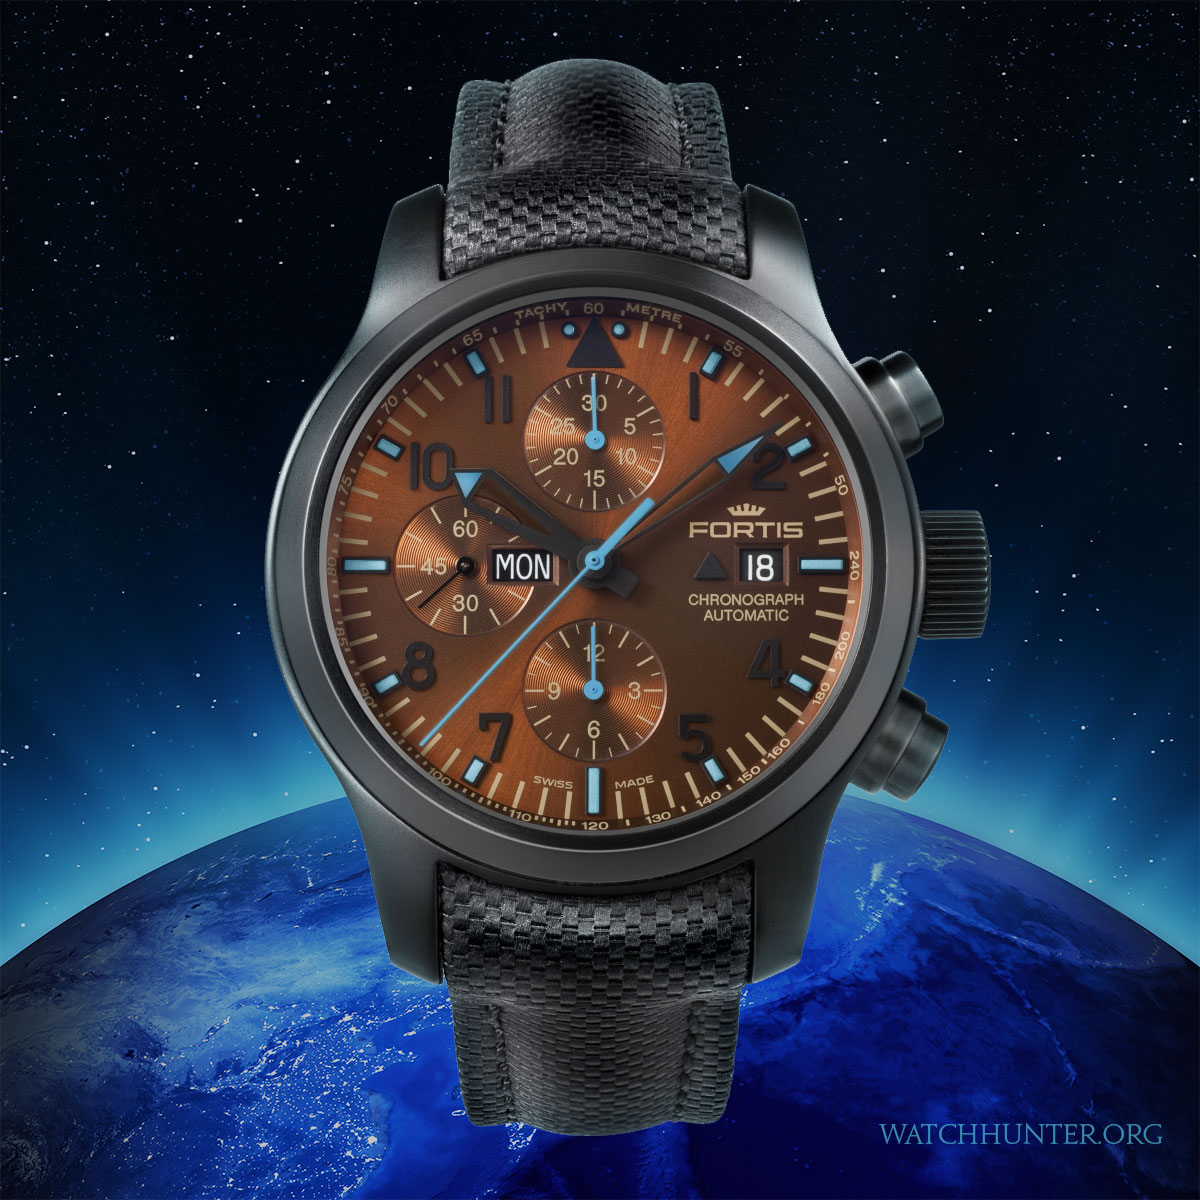 Fortis Blue Horizon Limited Edition watch with brown sunburst dial floating over Earth